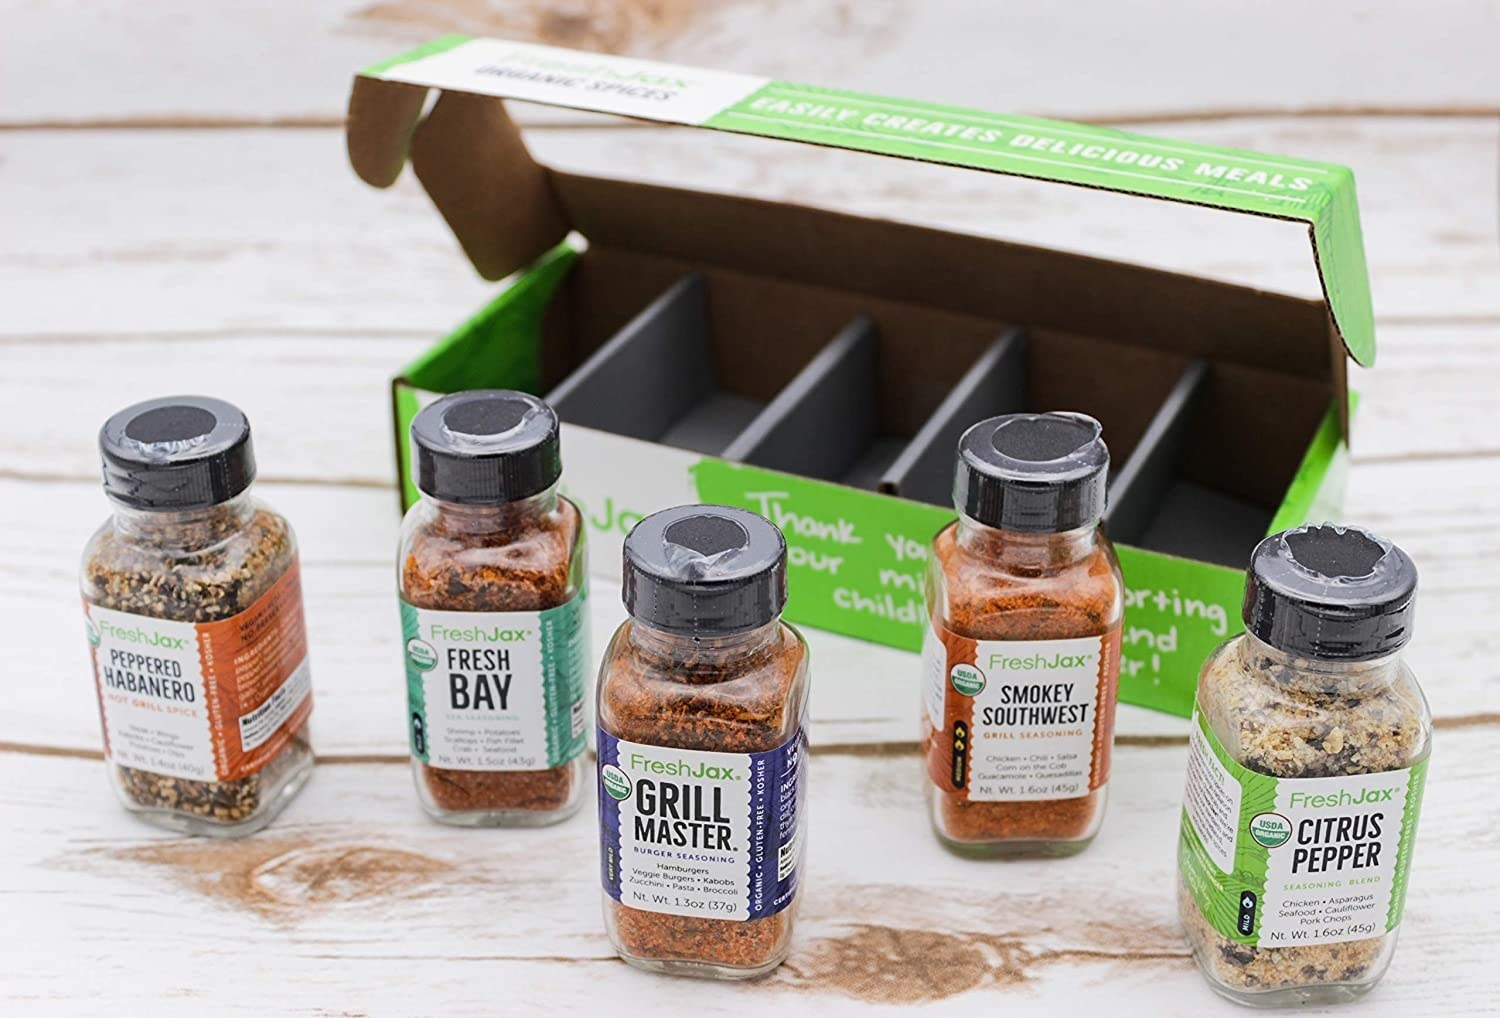 The grilling themed box, with five bottles of spices each labeled with their name and a short list of foods to try them on